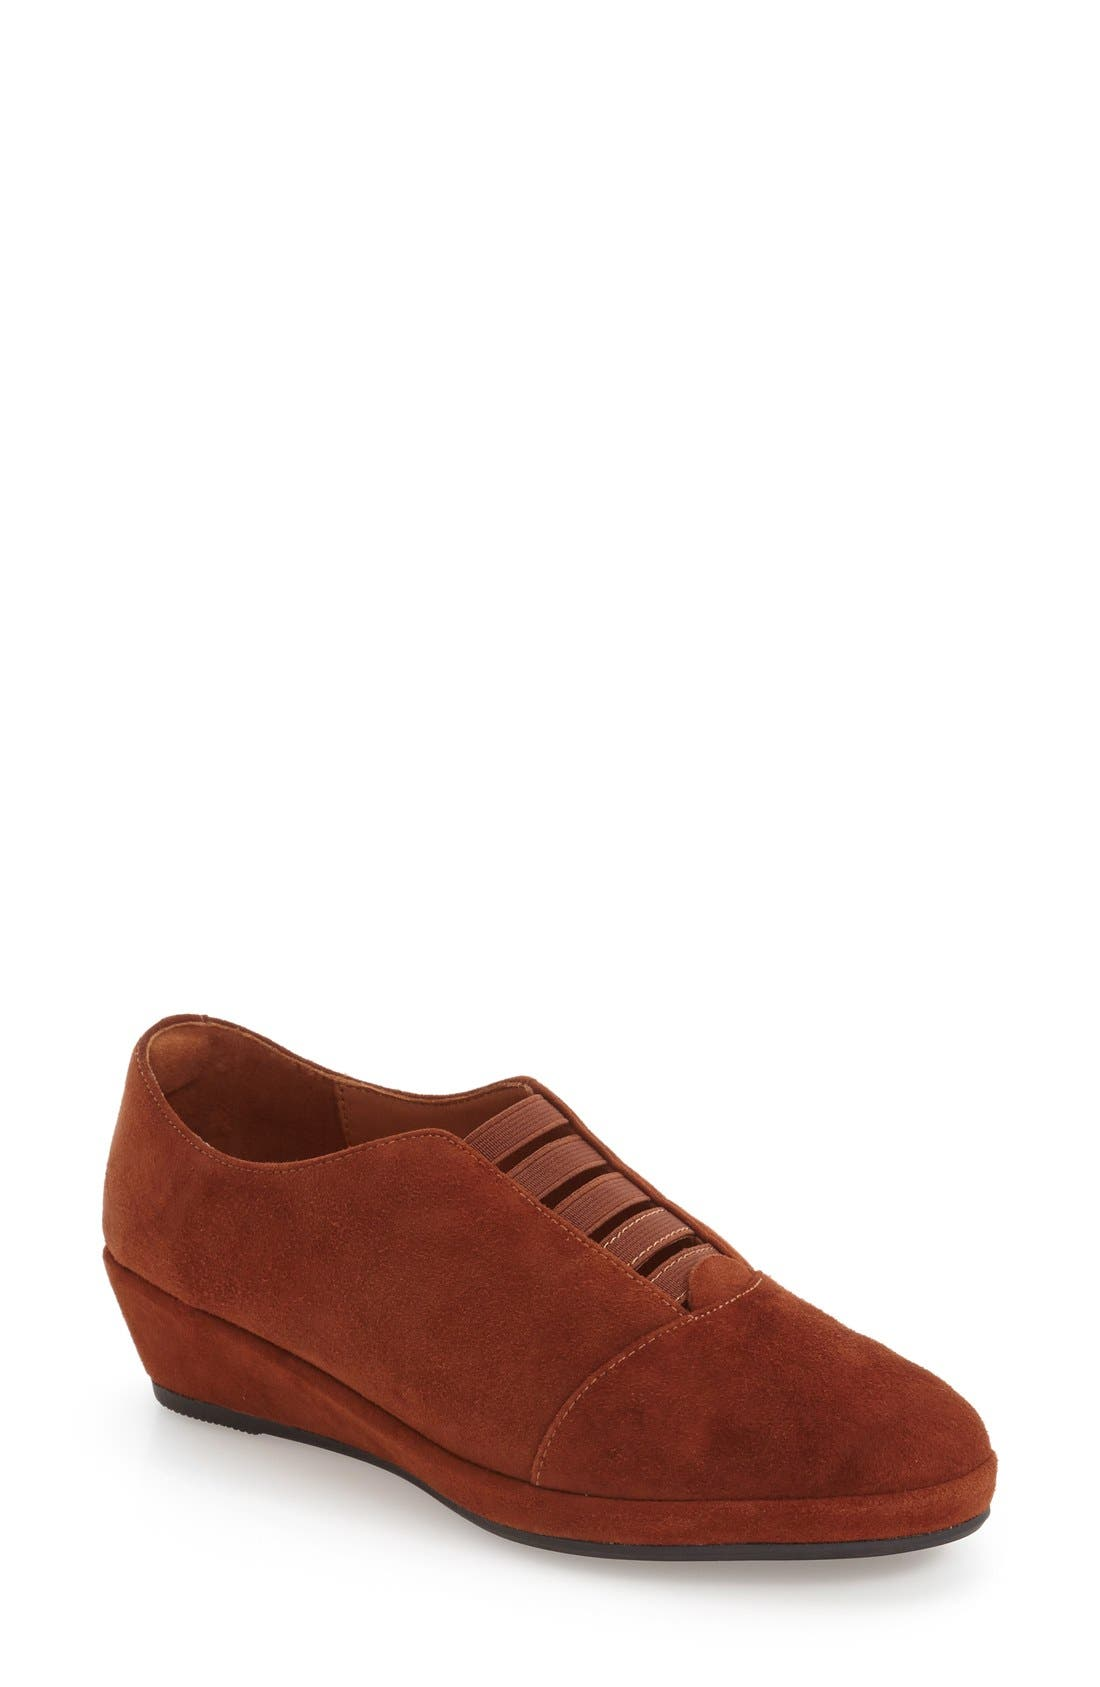 'Beziers' Slip-On,                             Main thumbnail 1, color,                             BRANDY SUEDE LEATHER